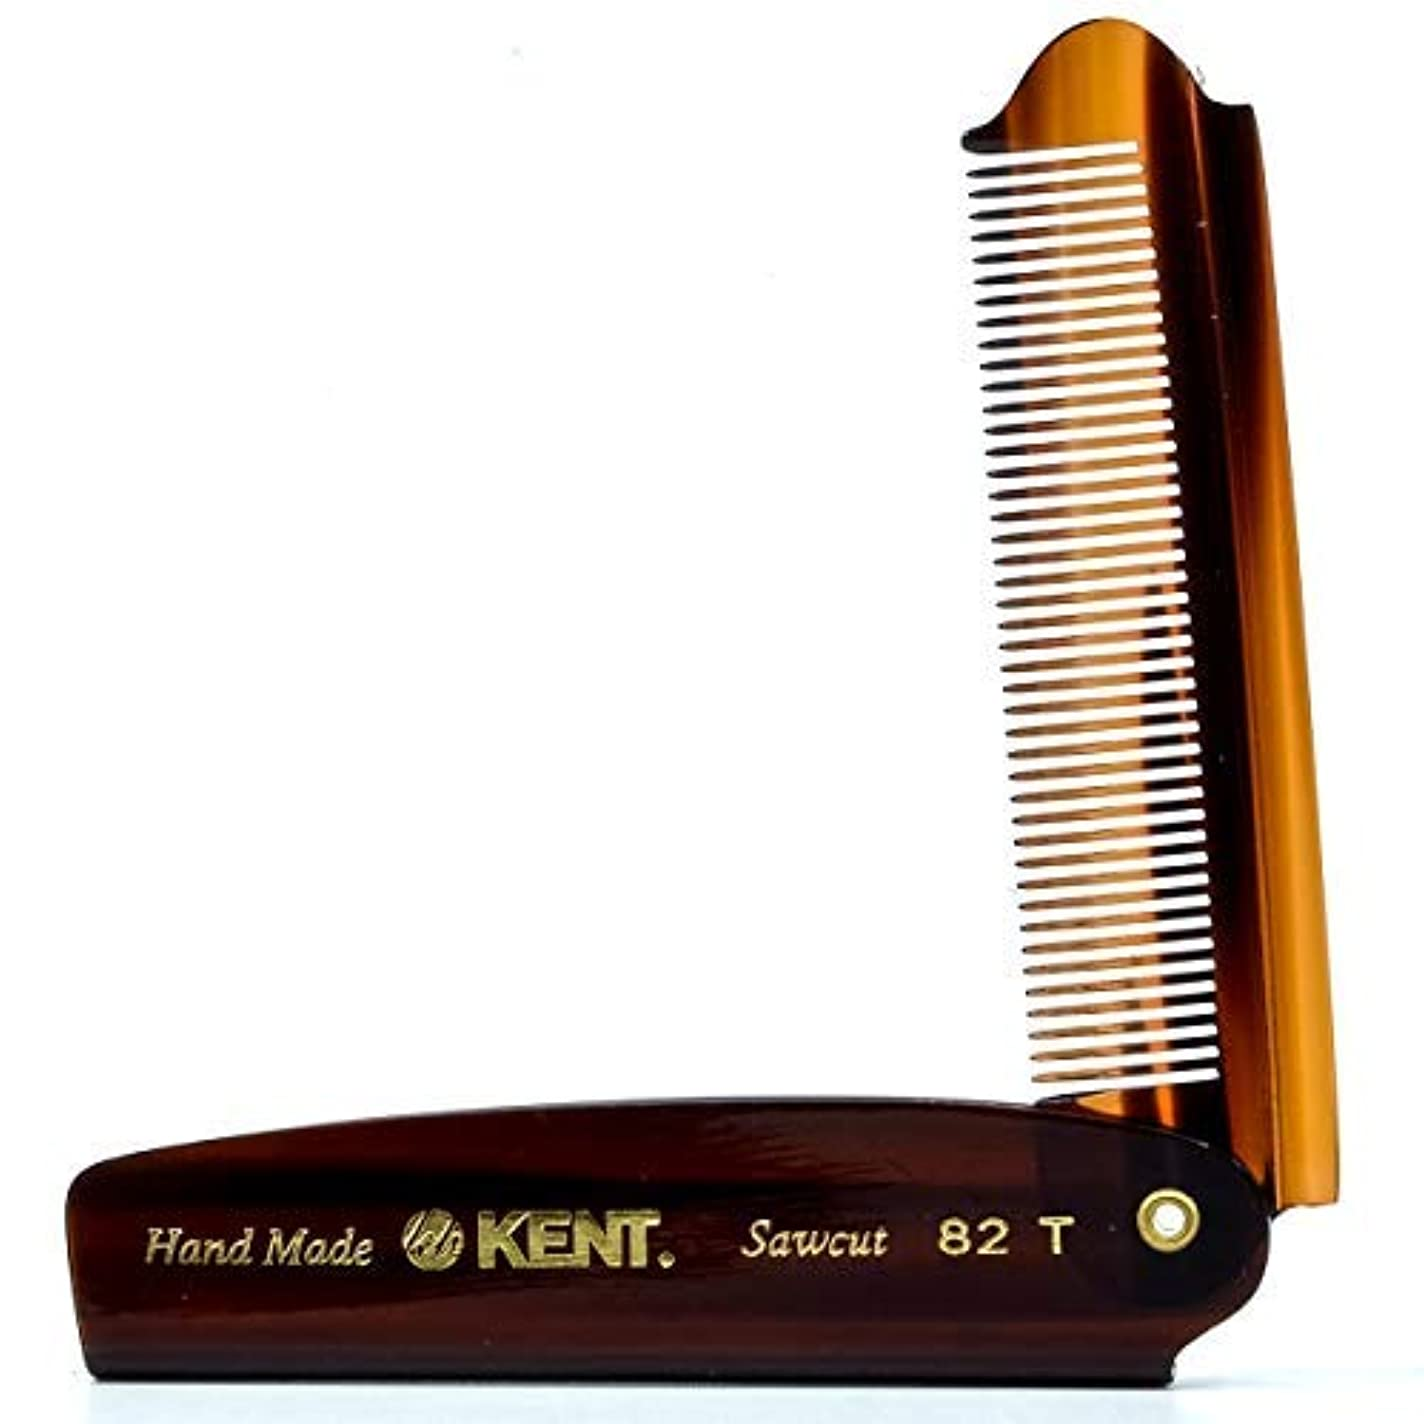 テレビ局付録戦艦Kent the Hand Made Fine Cut 4 Inches Folding Pocket Comb 82T for Men [並行輸入品]